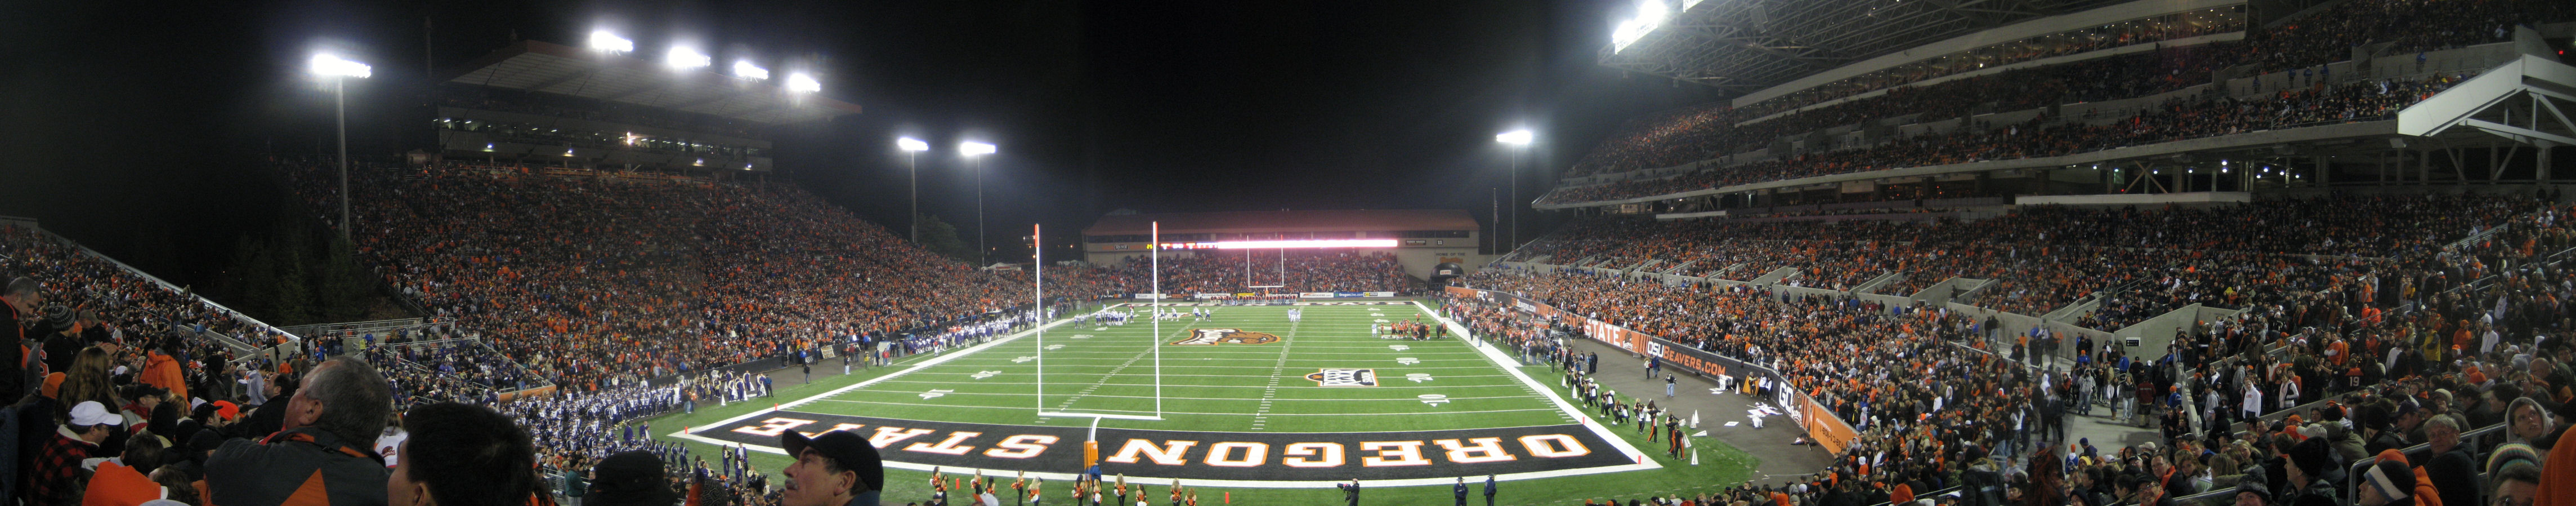 Panoramic view from the southeast end zone during the night game against Washington in November 2007